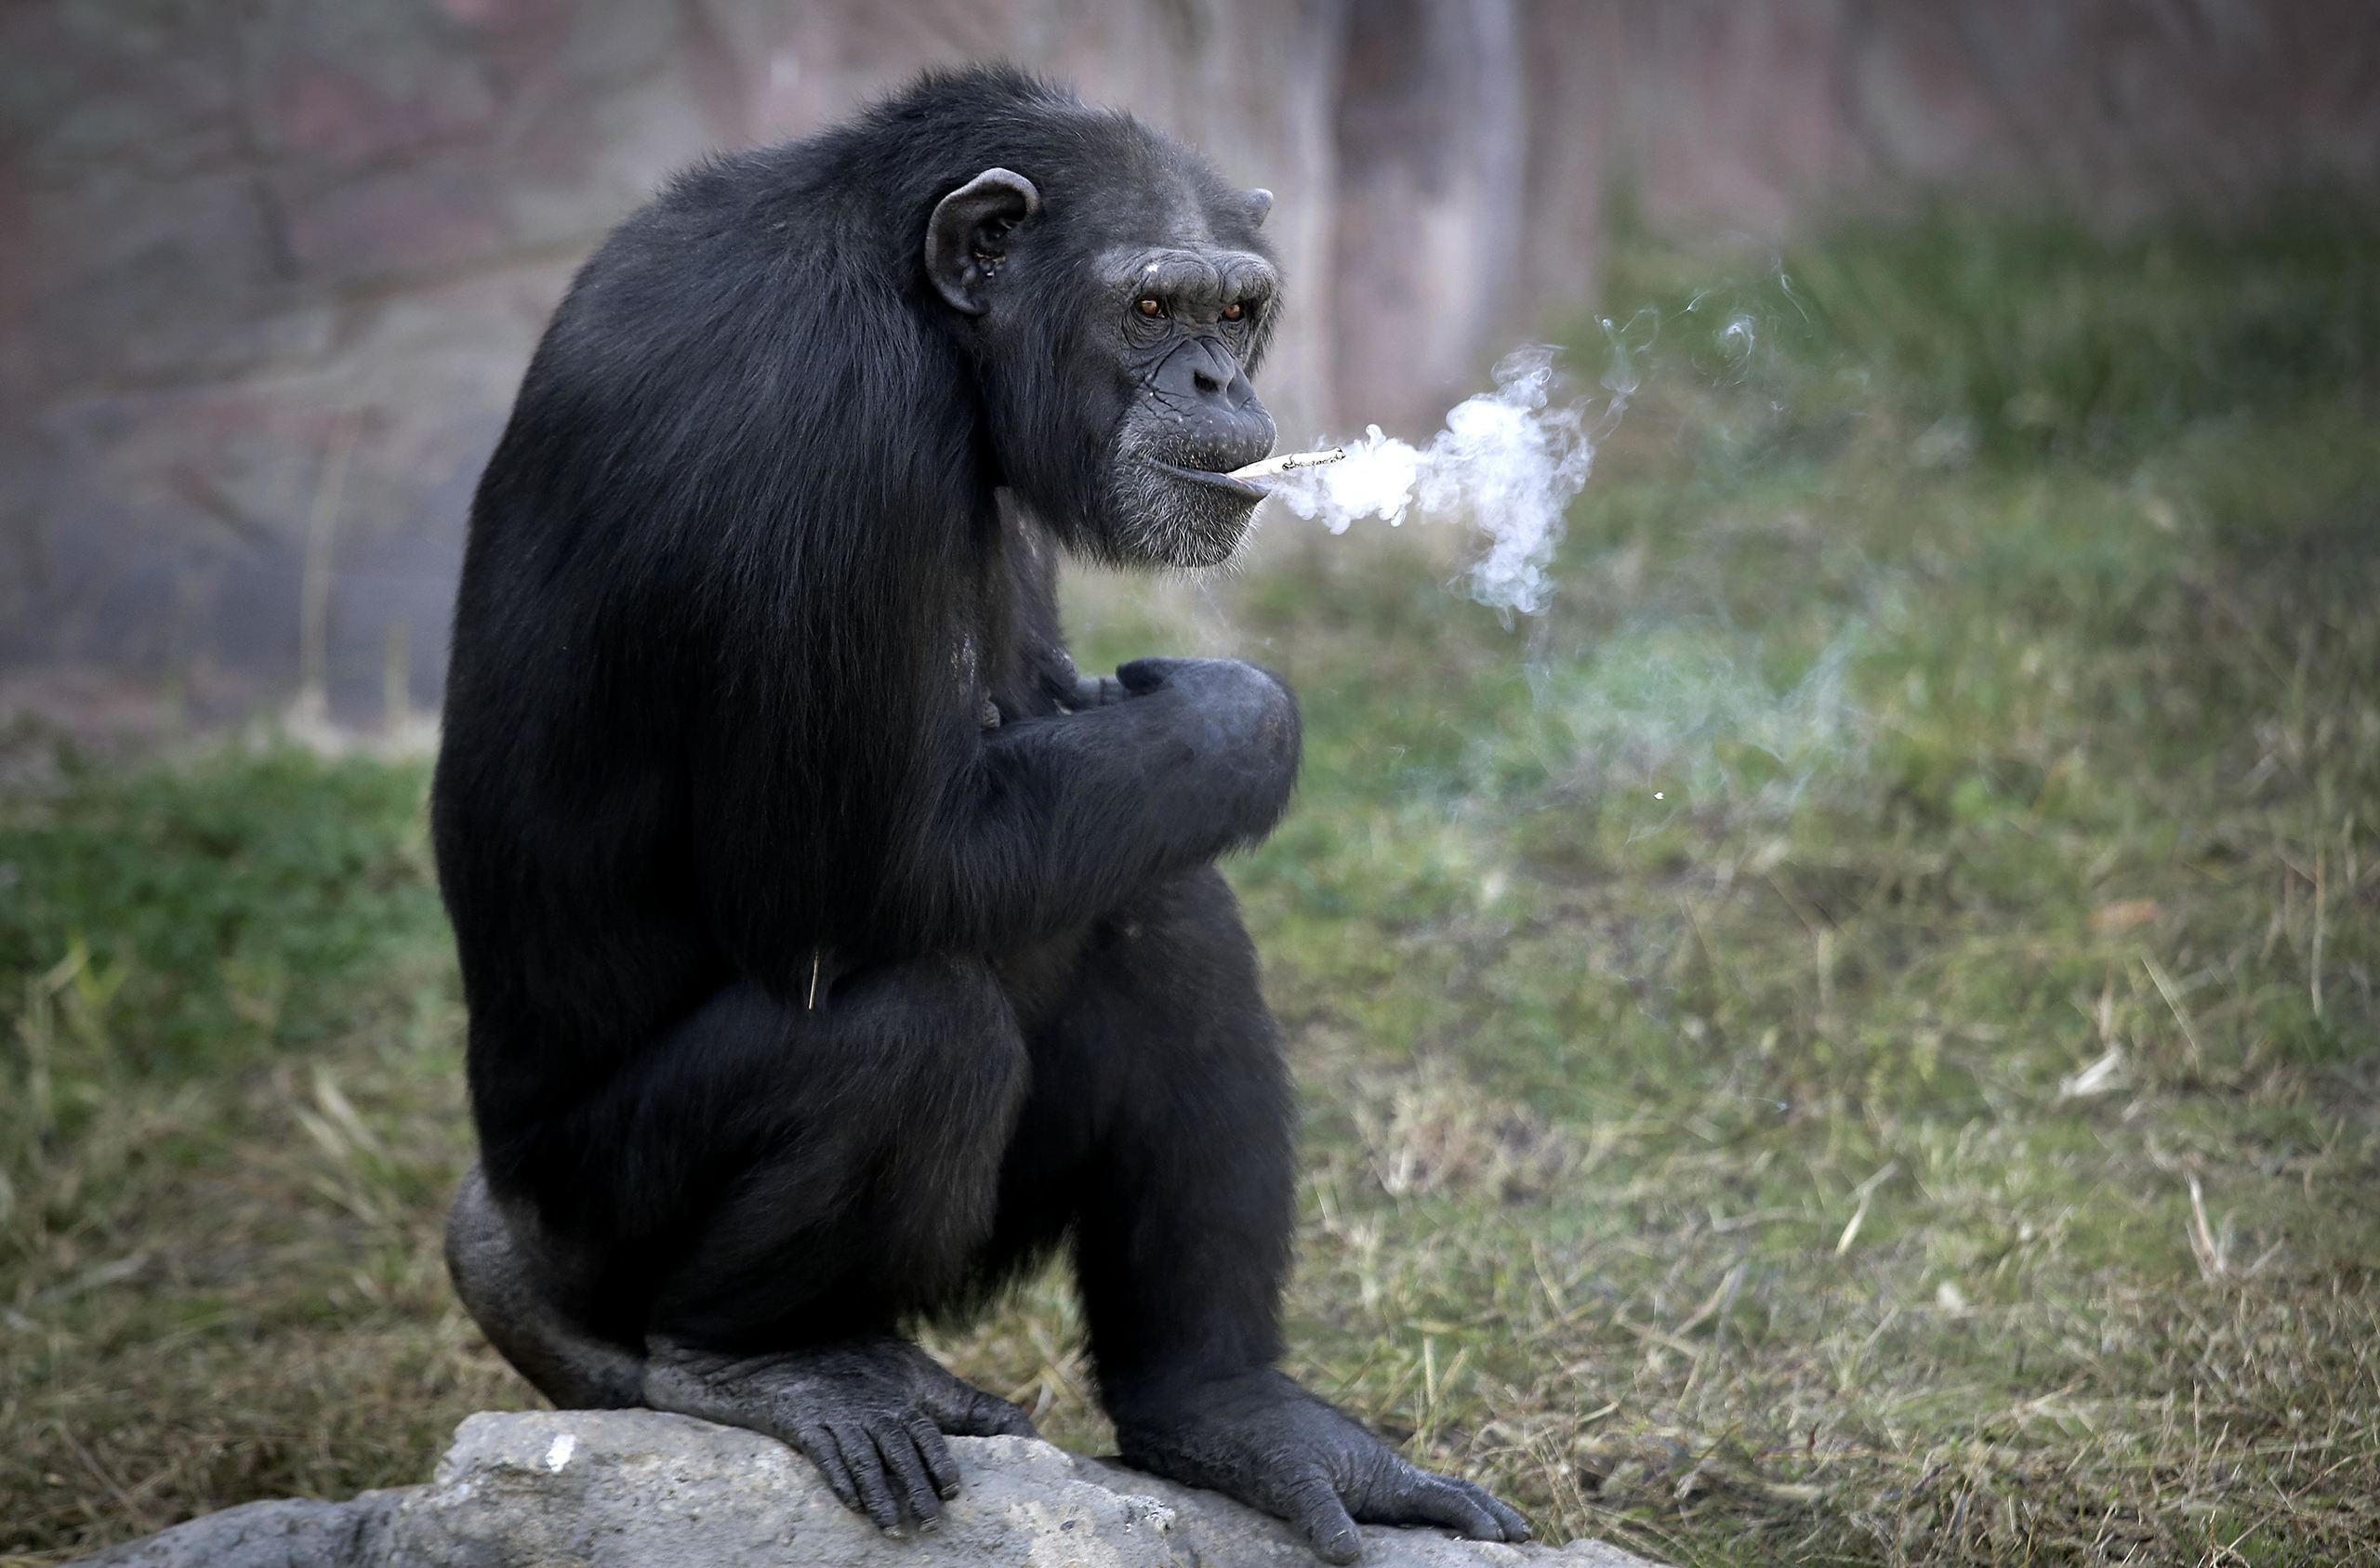 Azalea, a 19-year-old female chimpanzee whose Korean name is  Dallae,  smokes a cigarette in her enclosure at the Central Zoo in Pyongyang, North Korea, on Oct. 19, 2016. According to officials at the newly renovated zoo, which has become a favorite leisure spot in the capital since it was re-opened in July, the chimpanzee smokes about a pack a day. They insist, however, that she does not inhale.